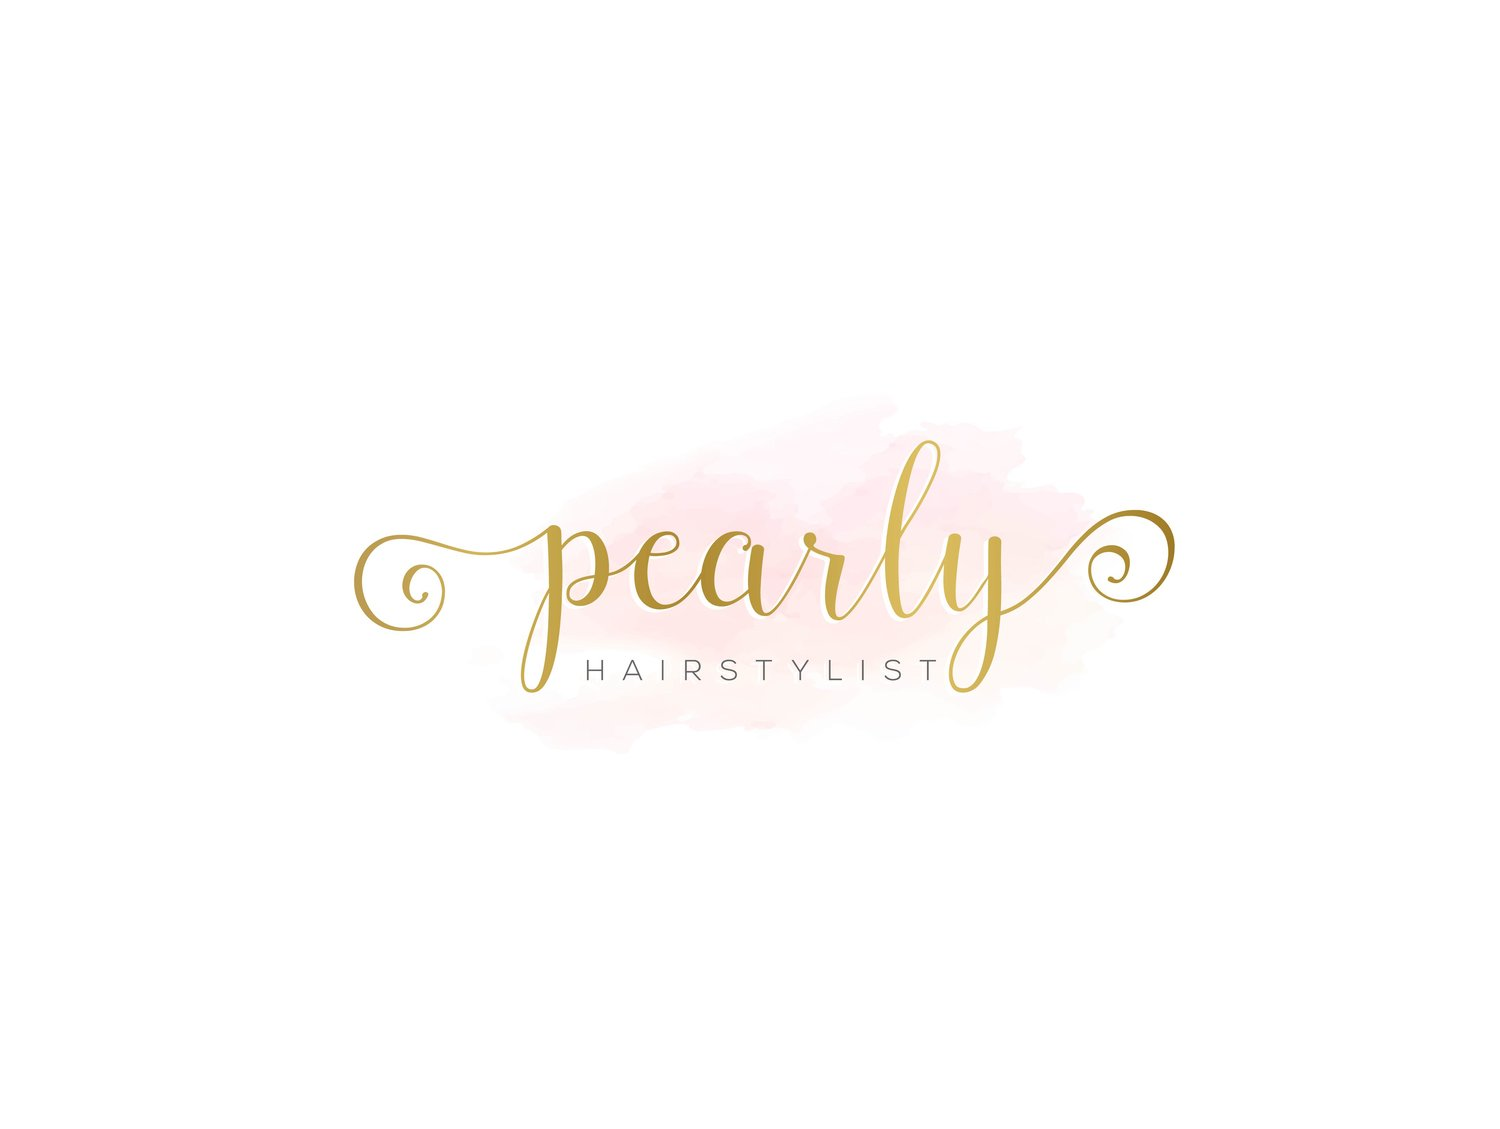 Pearly Hairstylist